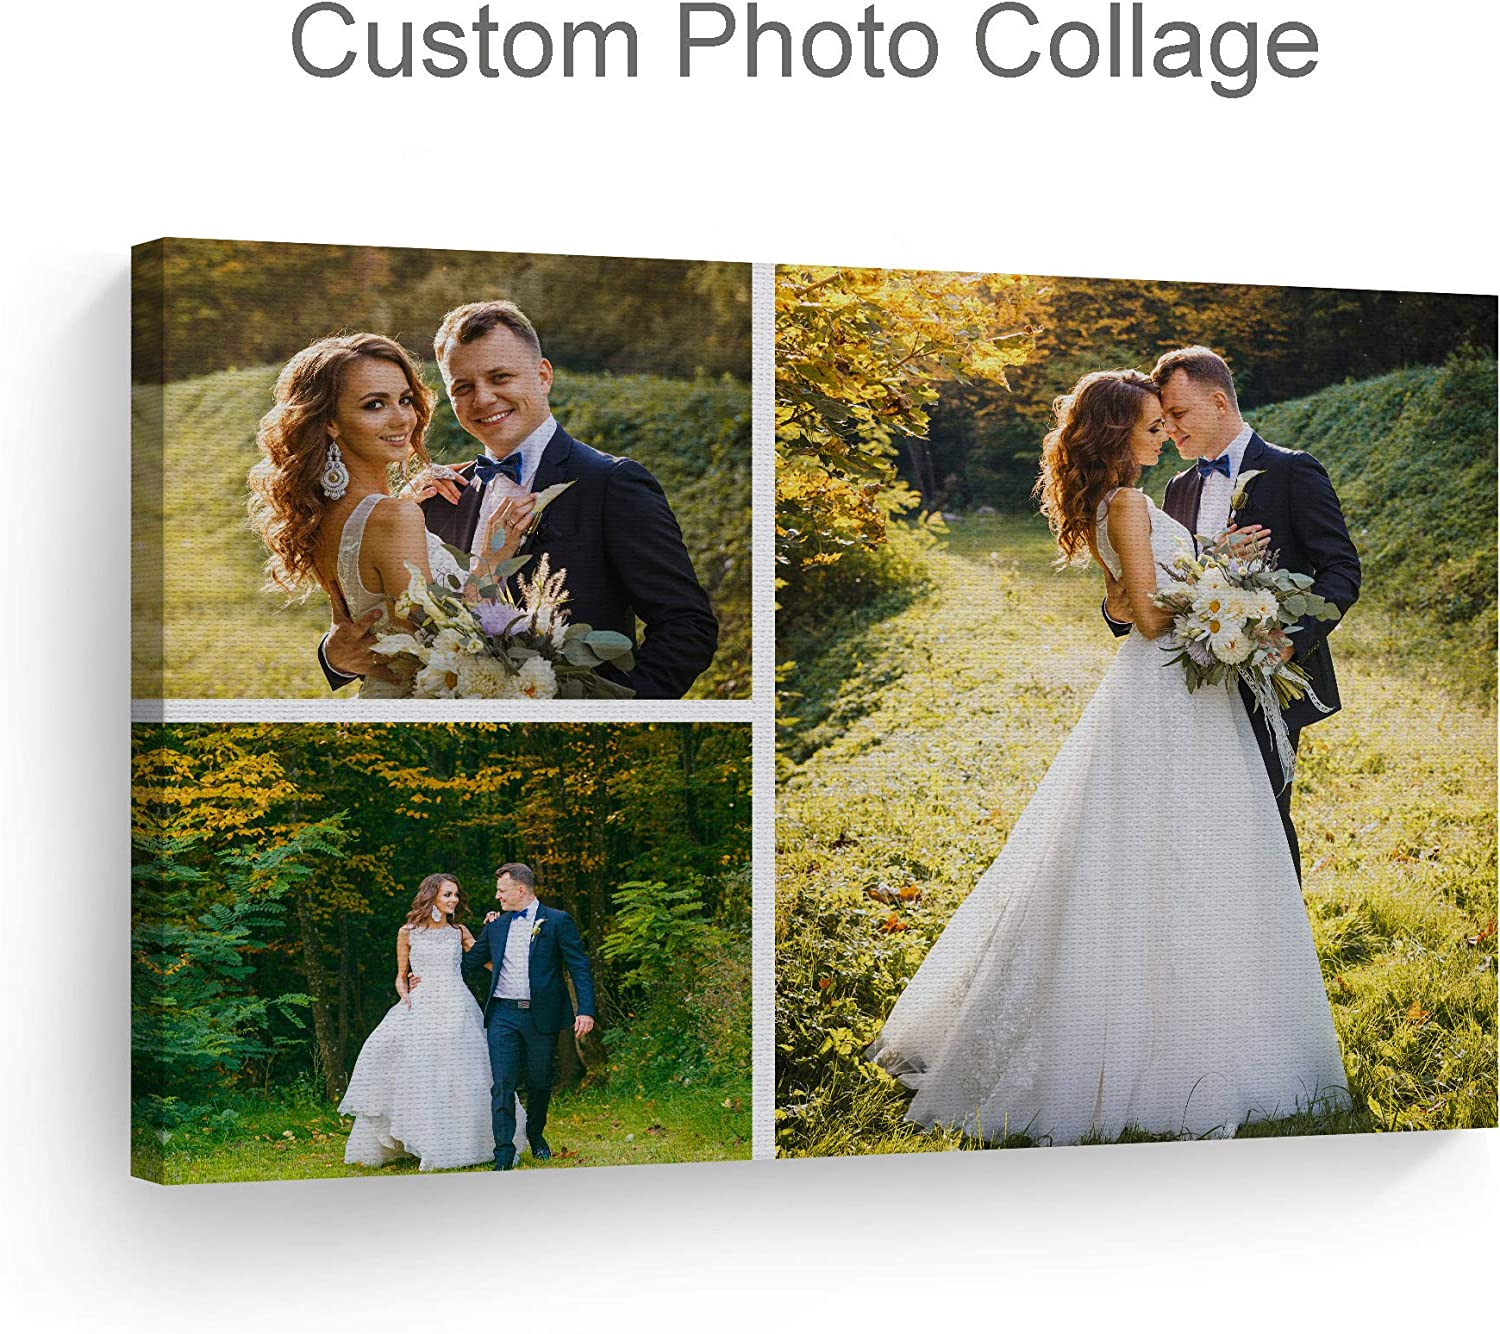 Smile Art Design Custom Canvas Print with Your Photos Personalized Photo 3 Images Collage Picture Custom Photo Prints Personalized Gifts for Men Wedding Gift Bacheloratte Decorations - 8x12 inches